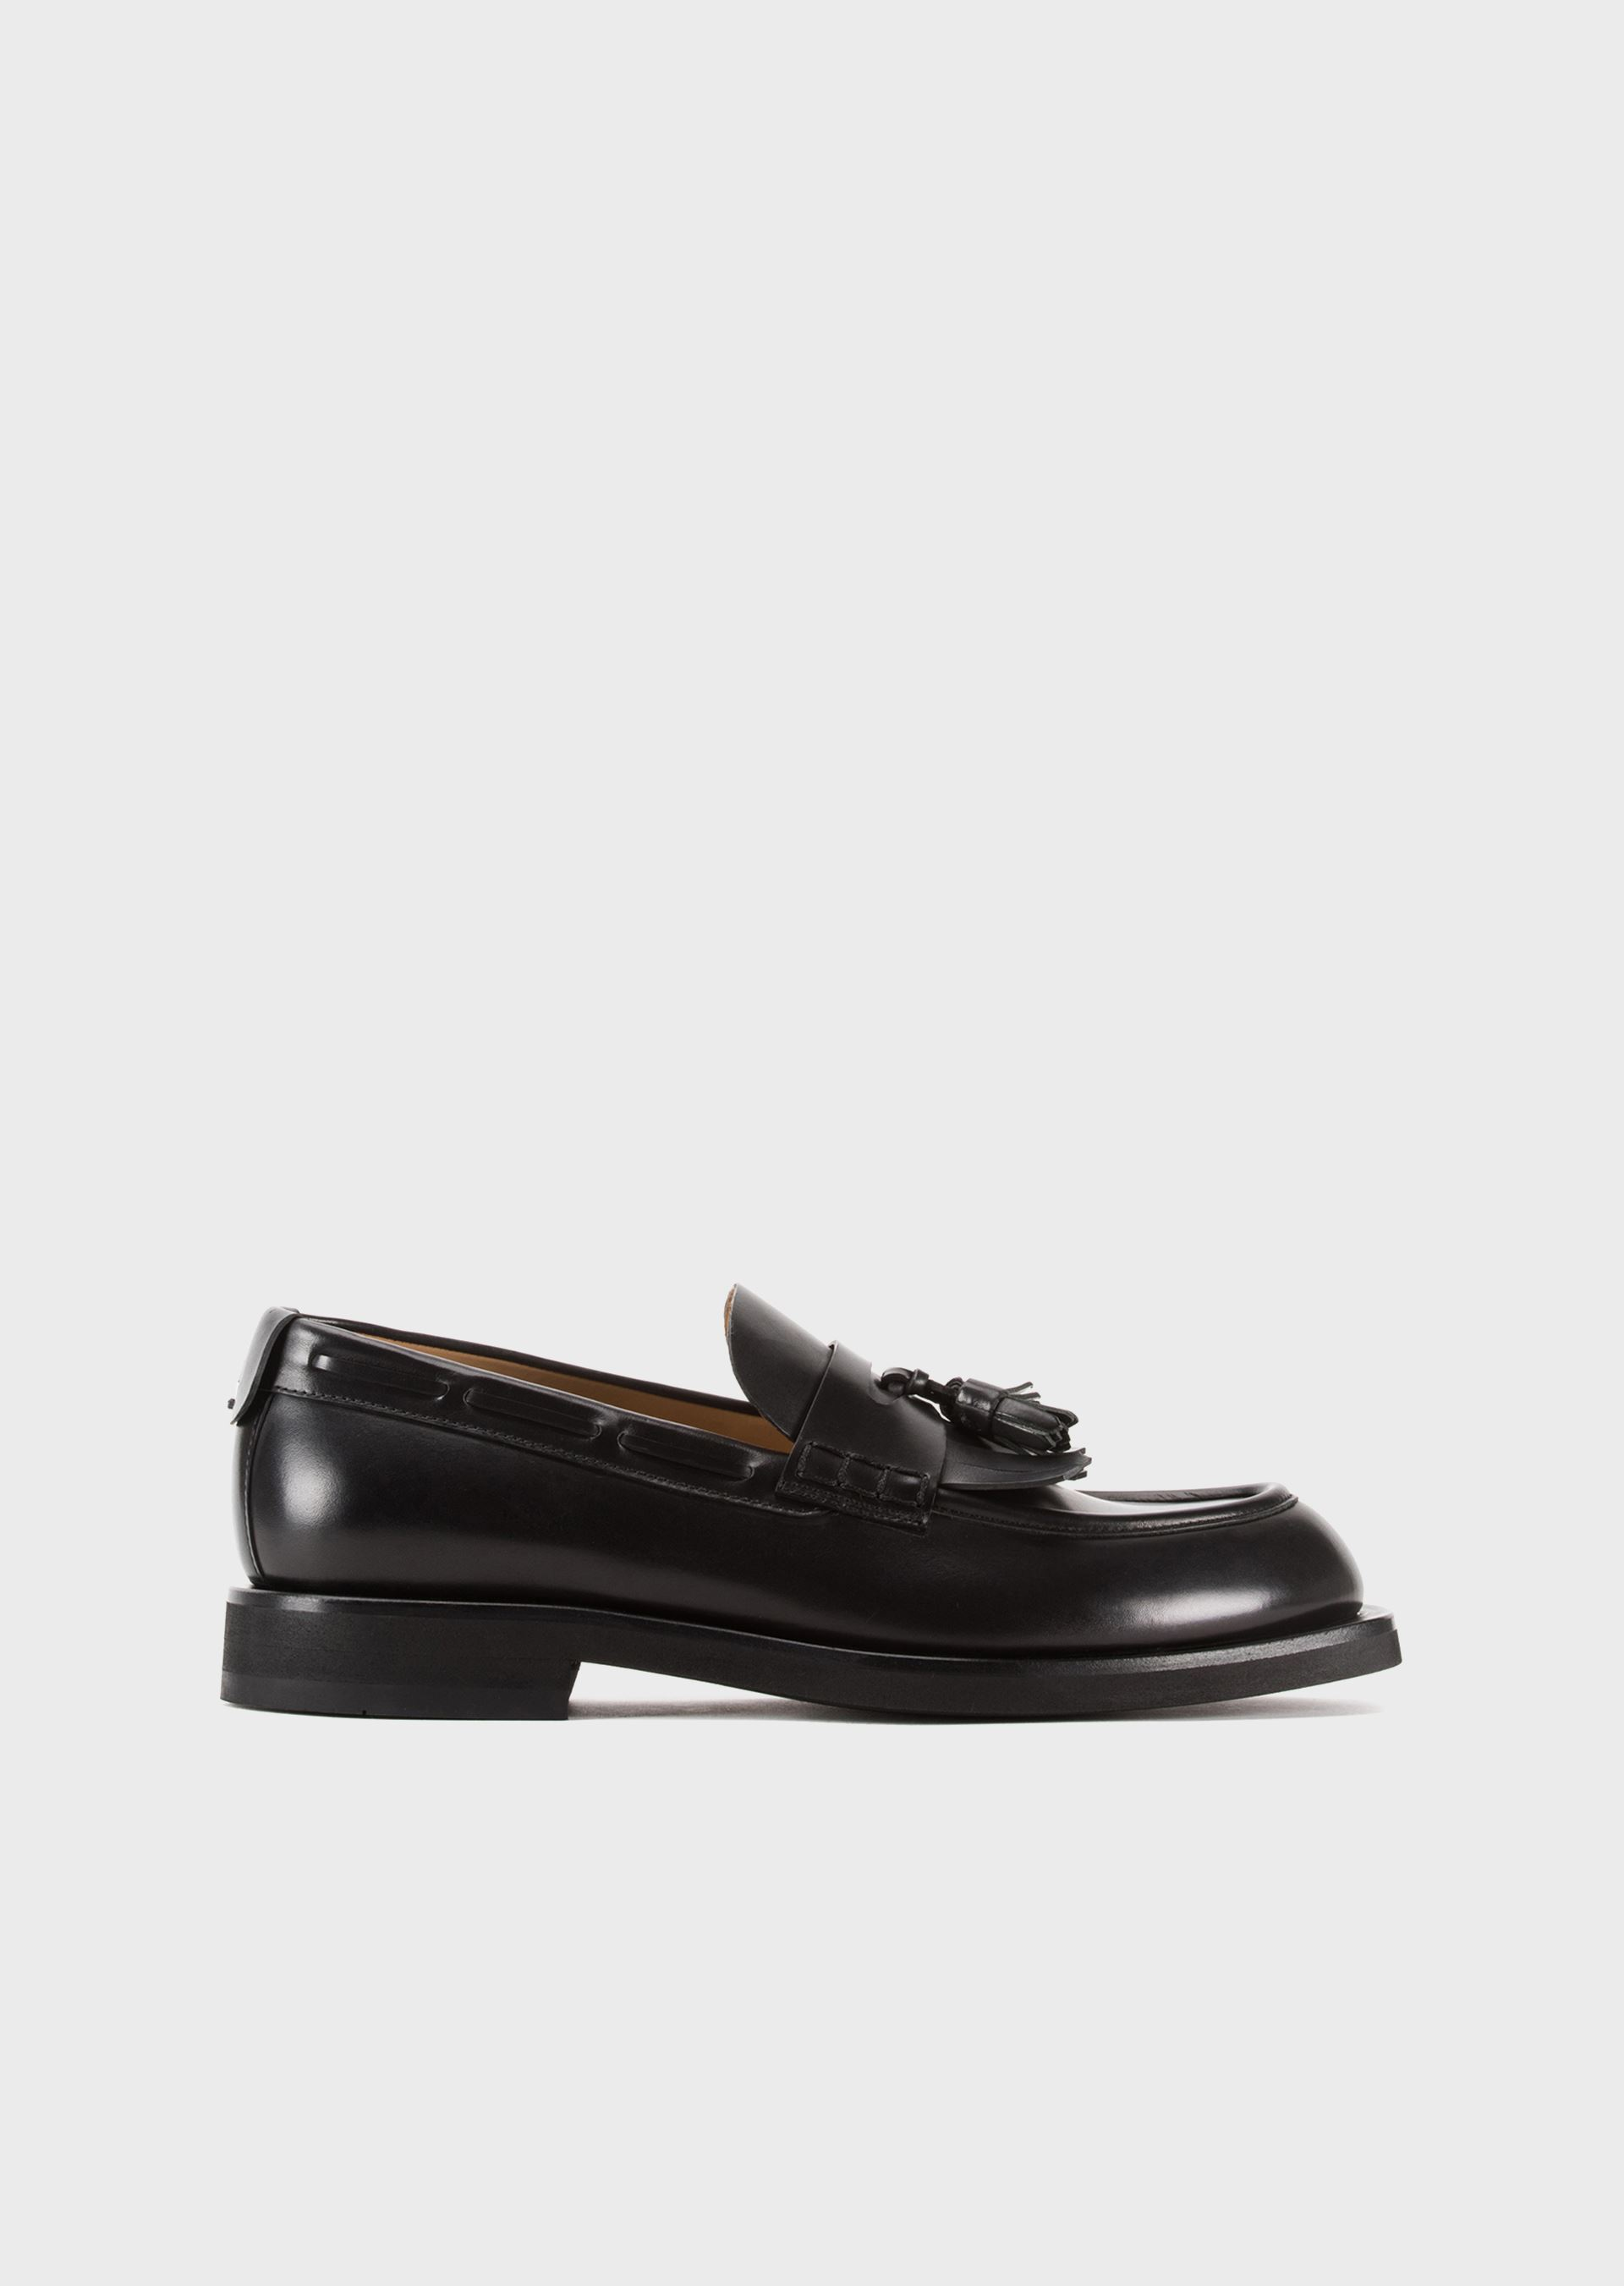 EMPORIO ARMANI Leather loafers with tassels